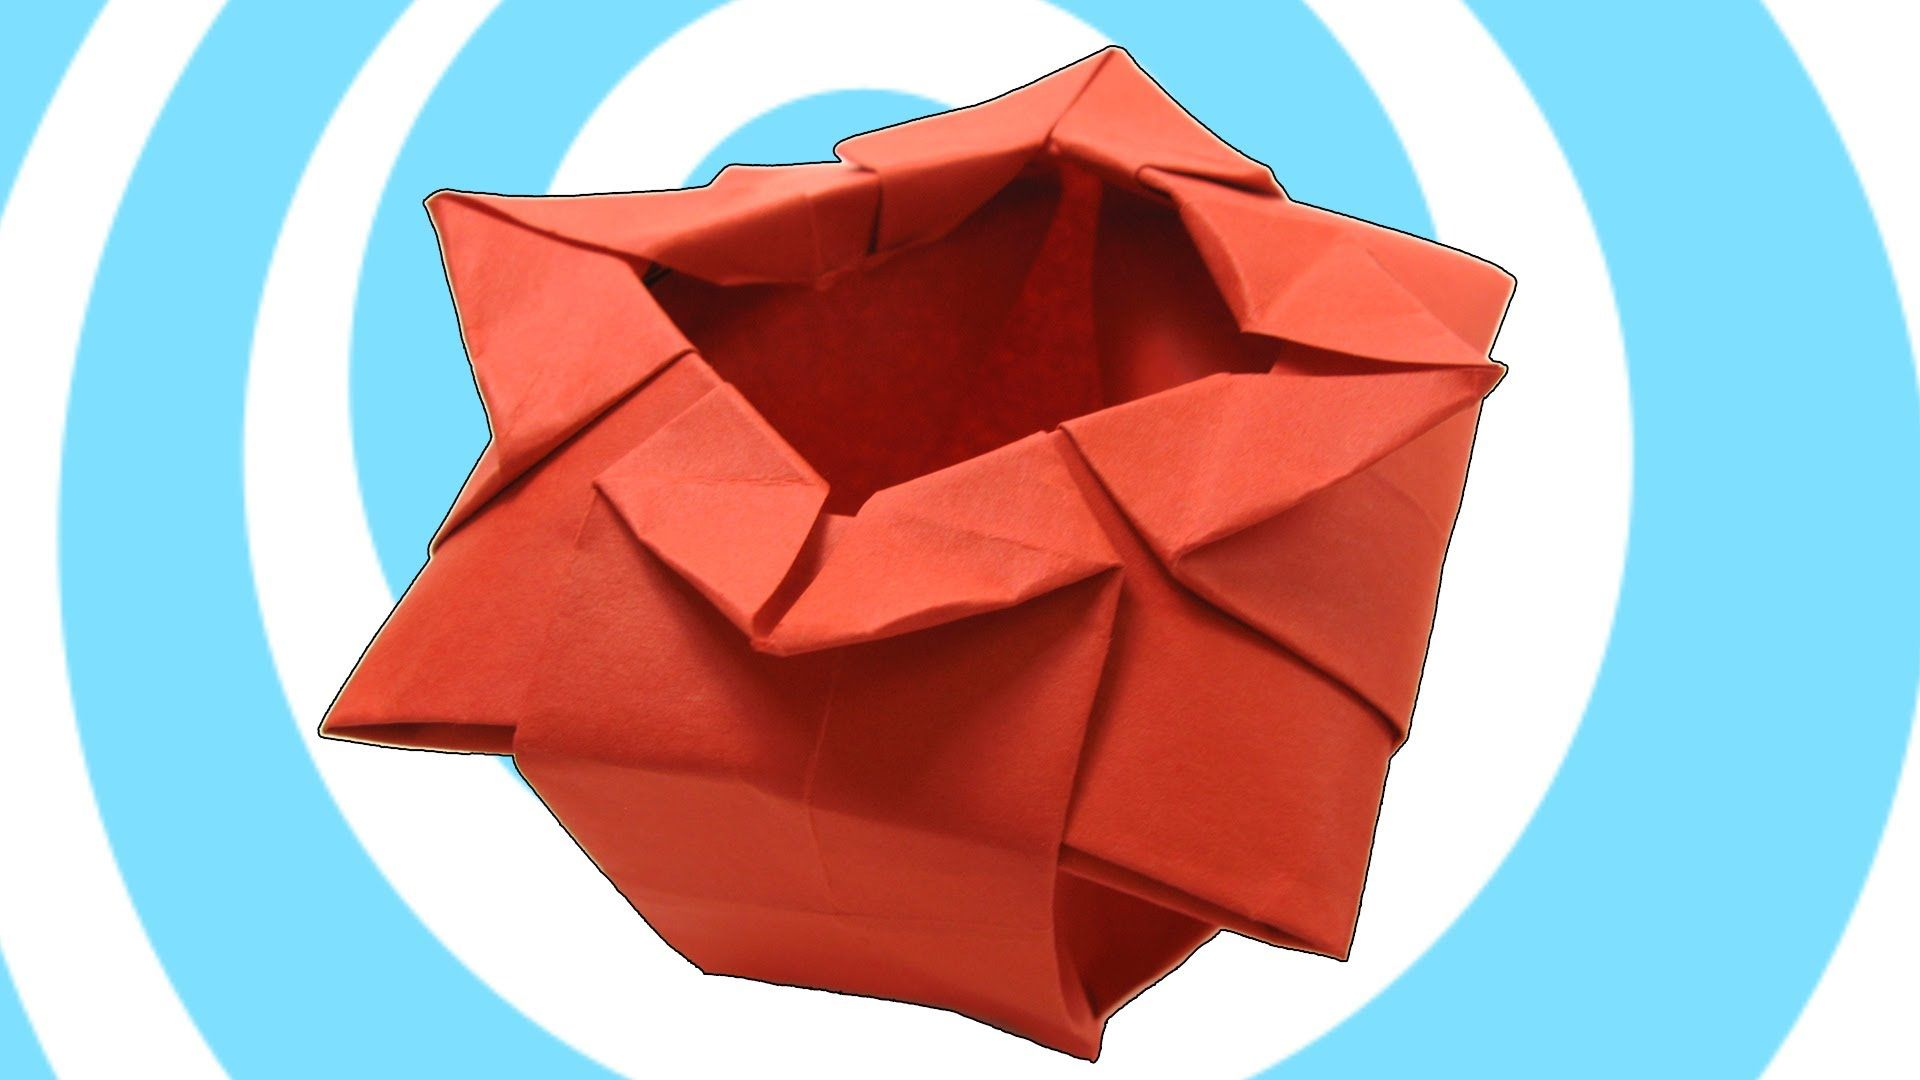 Pin On Origami Instructions